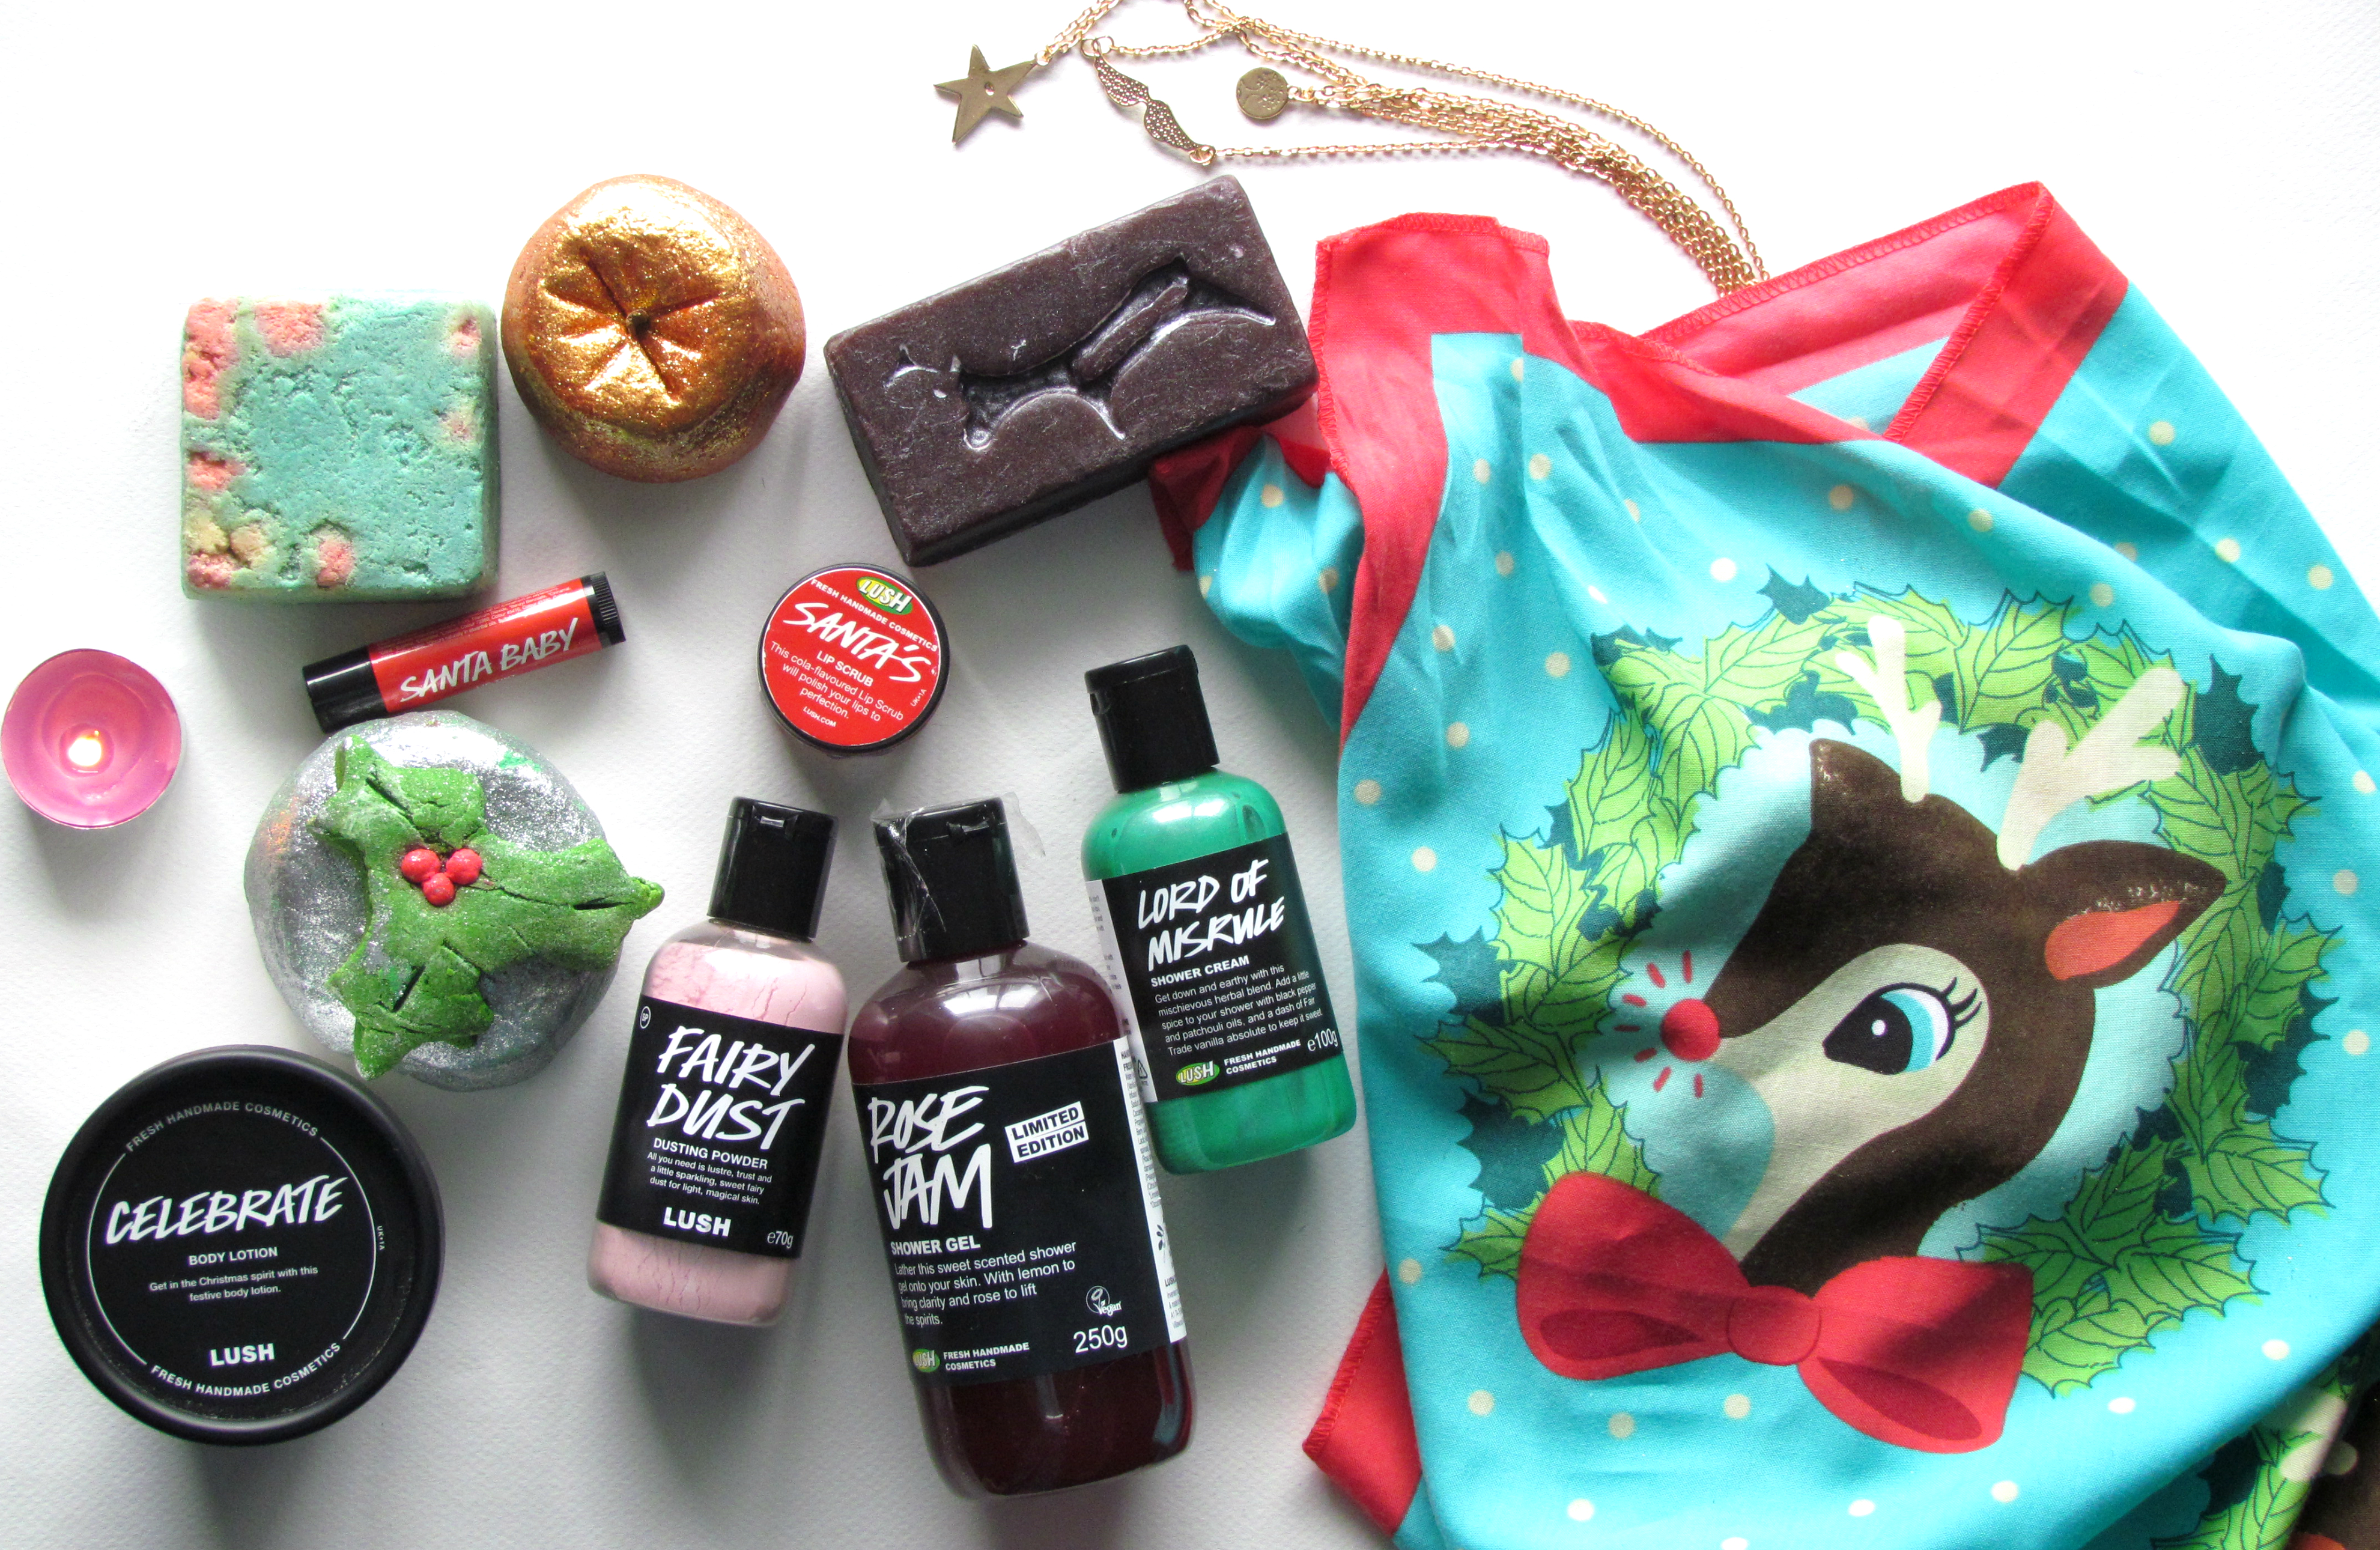 LUSH Christmas Collection 2015 |Products, Price List, Launch Date etc